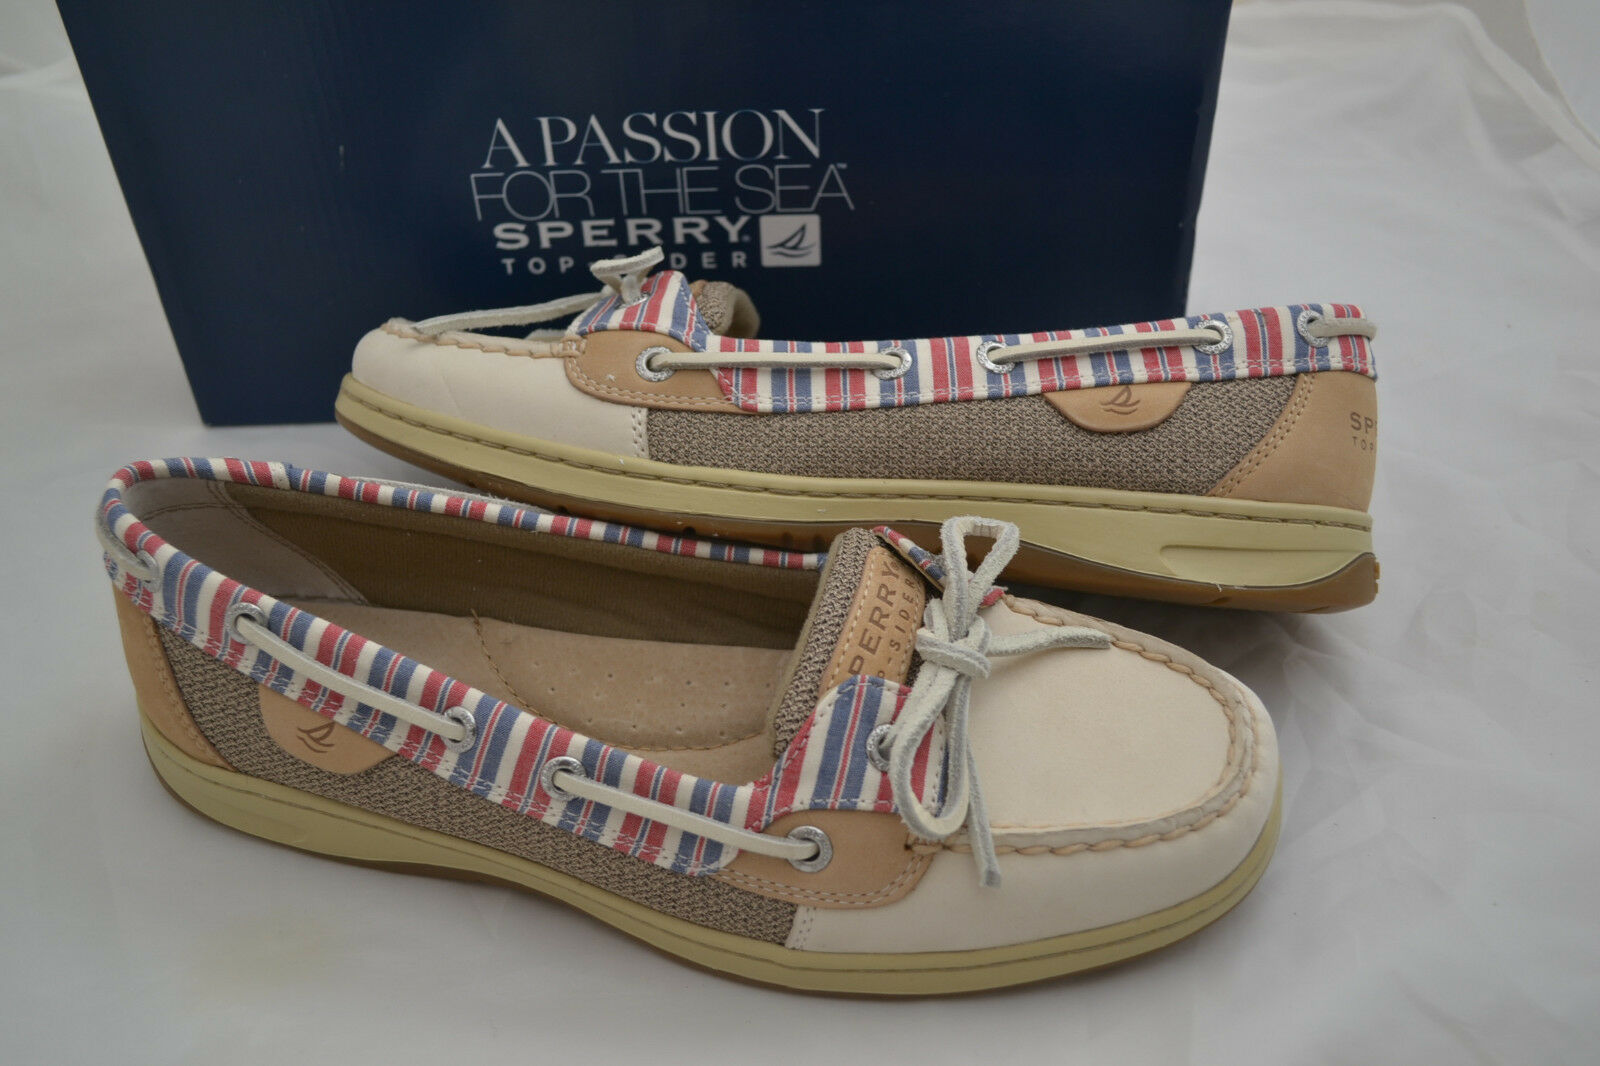 NIB Sperry Top Sider ANGELFISH Ivory/Stripe Boat Schuhes - Größe 9